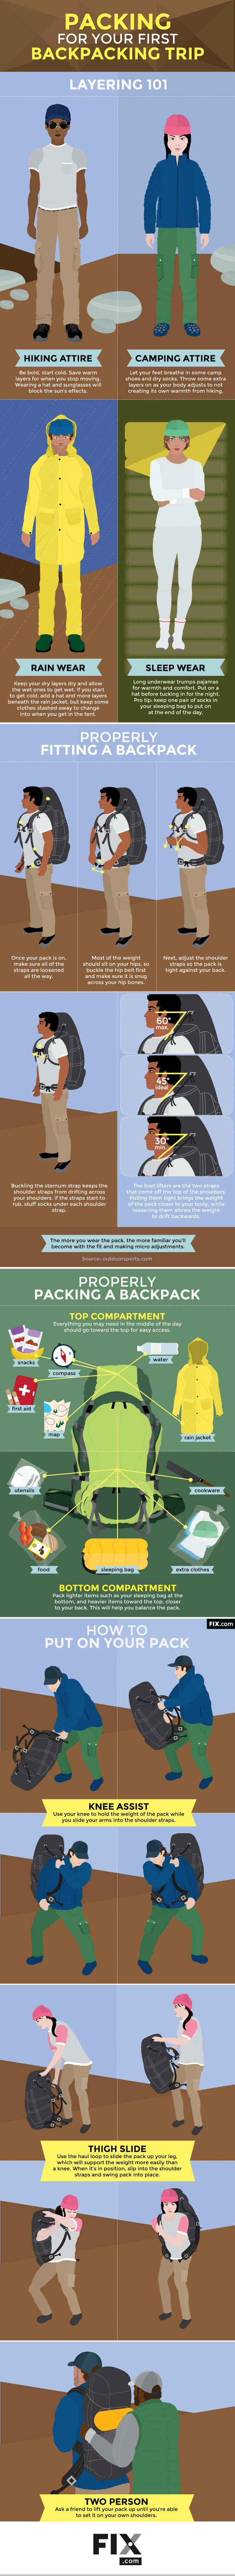 Backpacking packing tips and how to